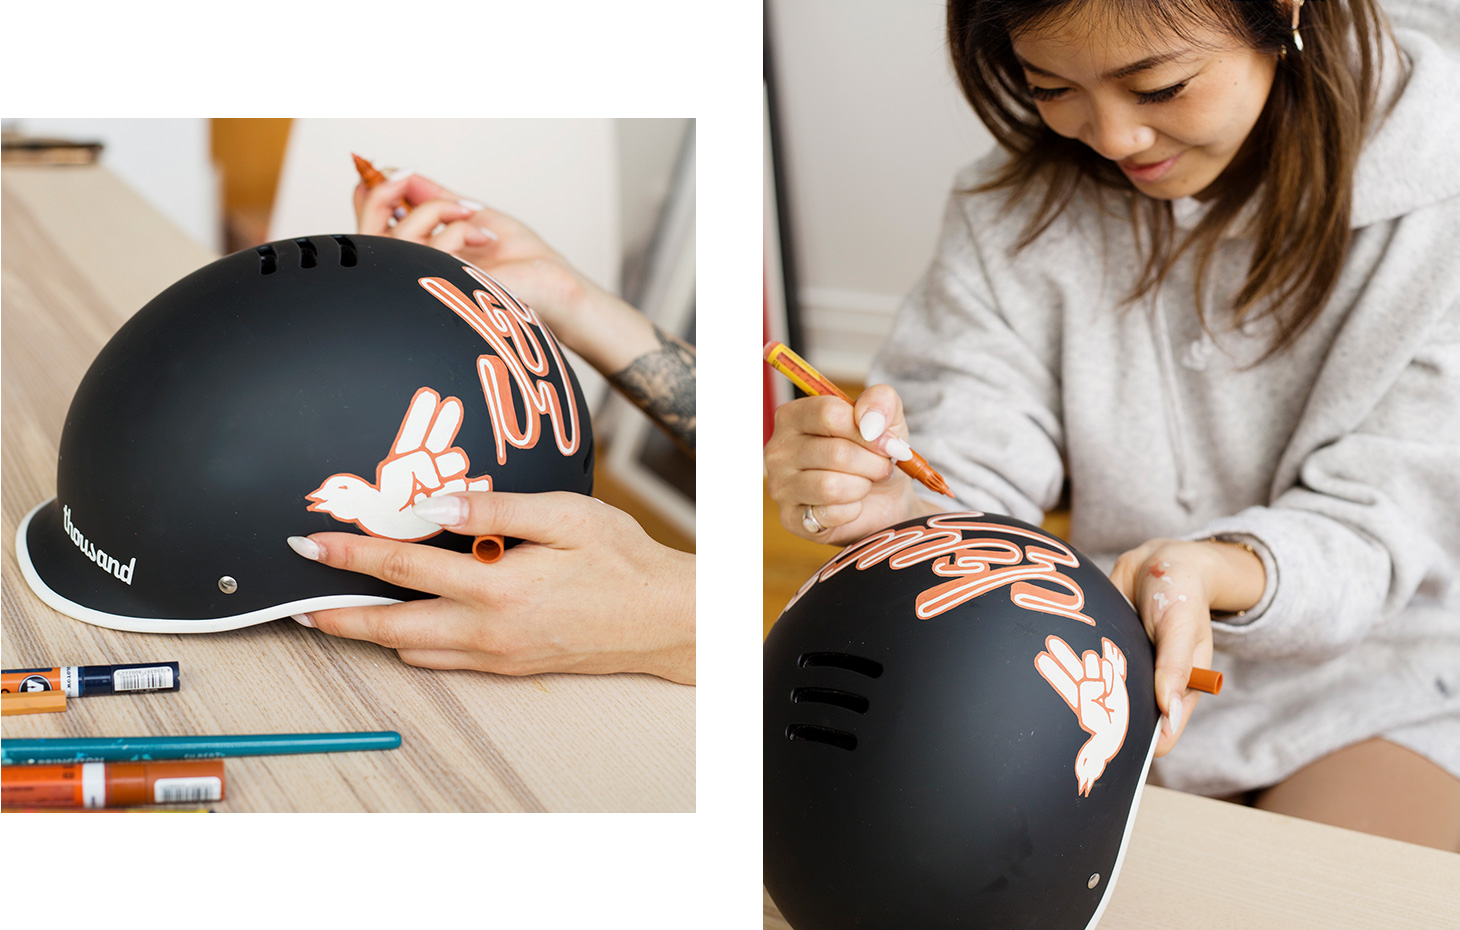 Jennet Liaw customizing a black bike helmet